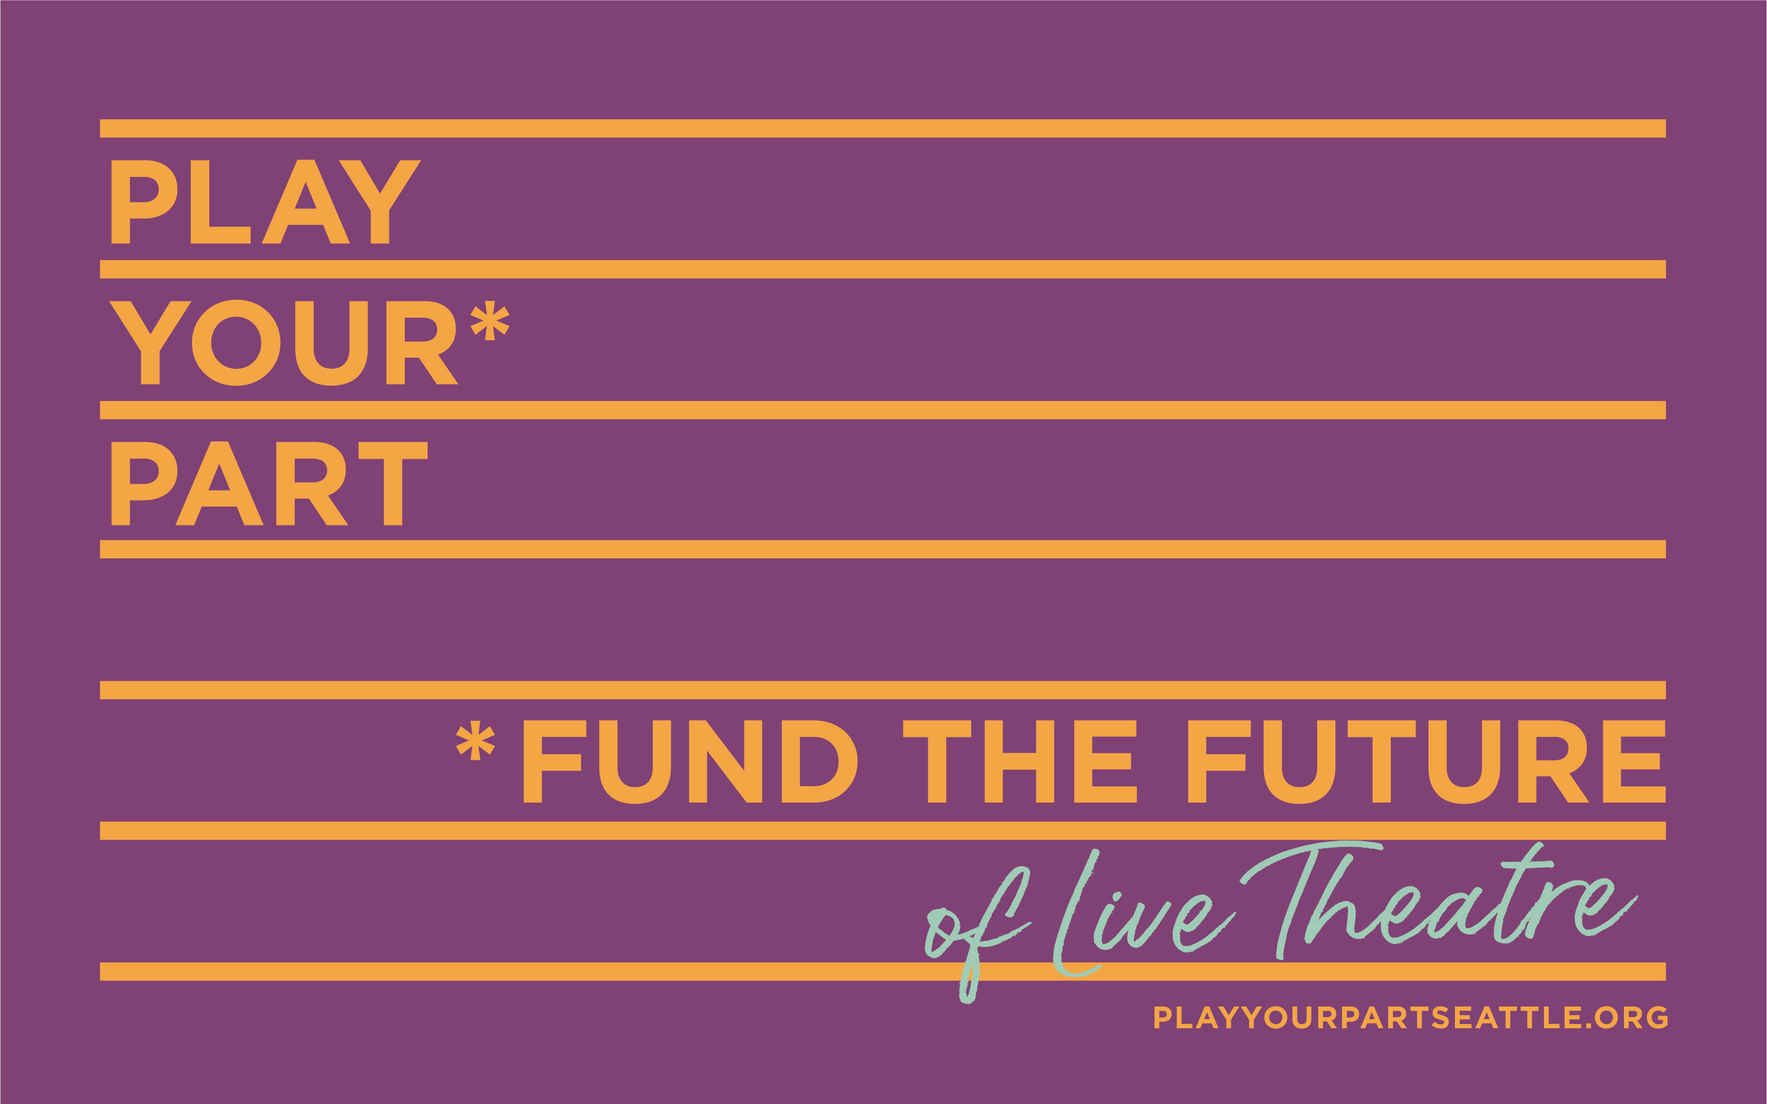 Fund the Future of LIVE theatre! image